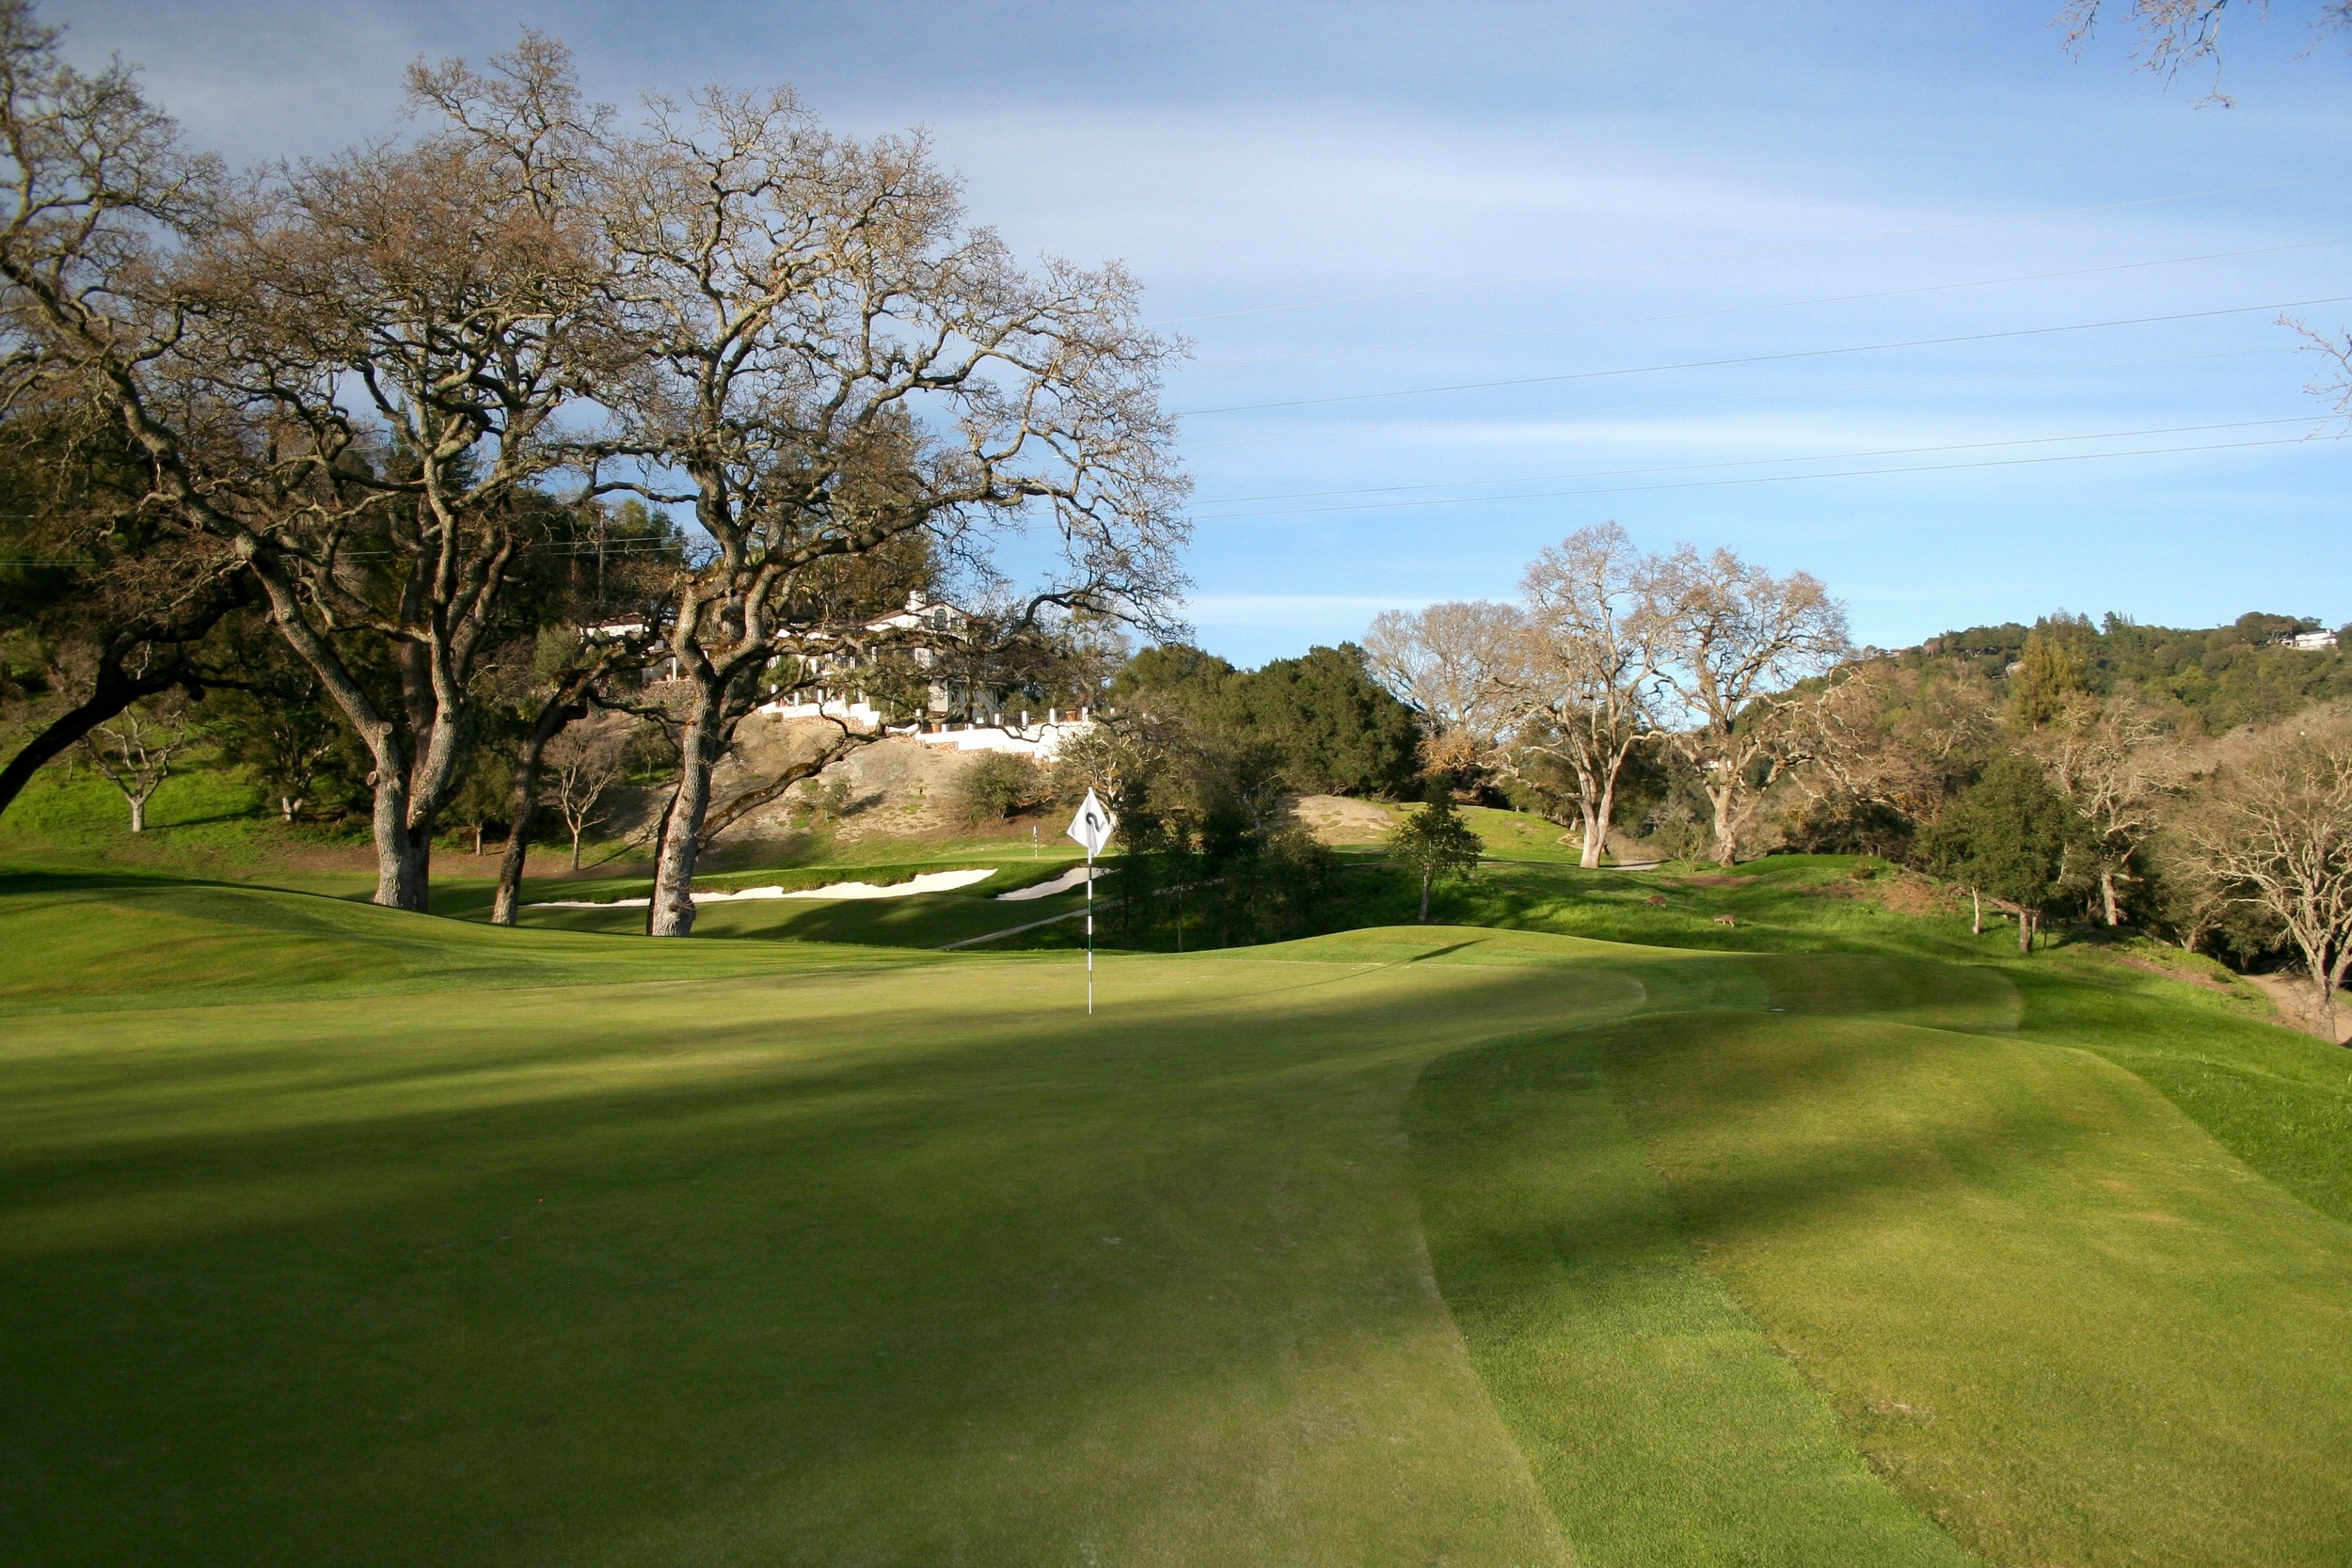 The green on the 2nd was also extended back and right to create more drama as well as engage golfers with the views.